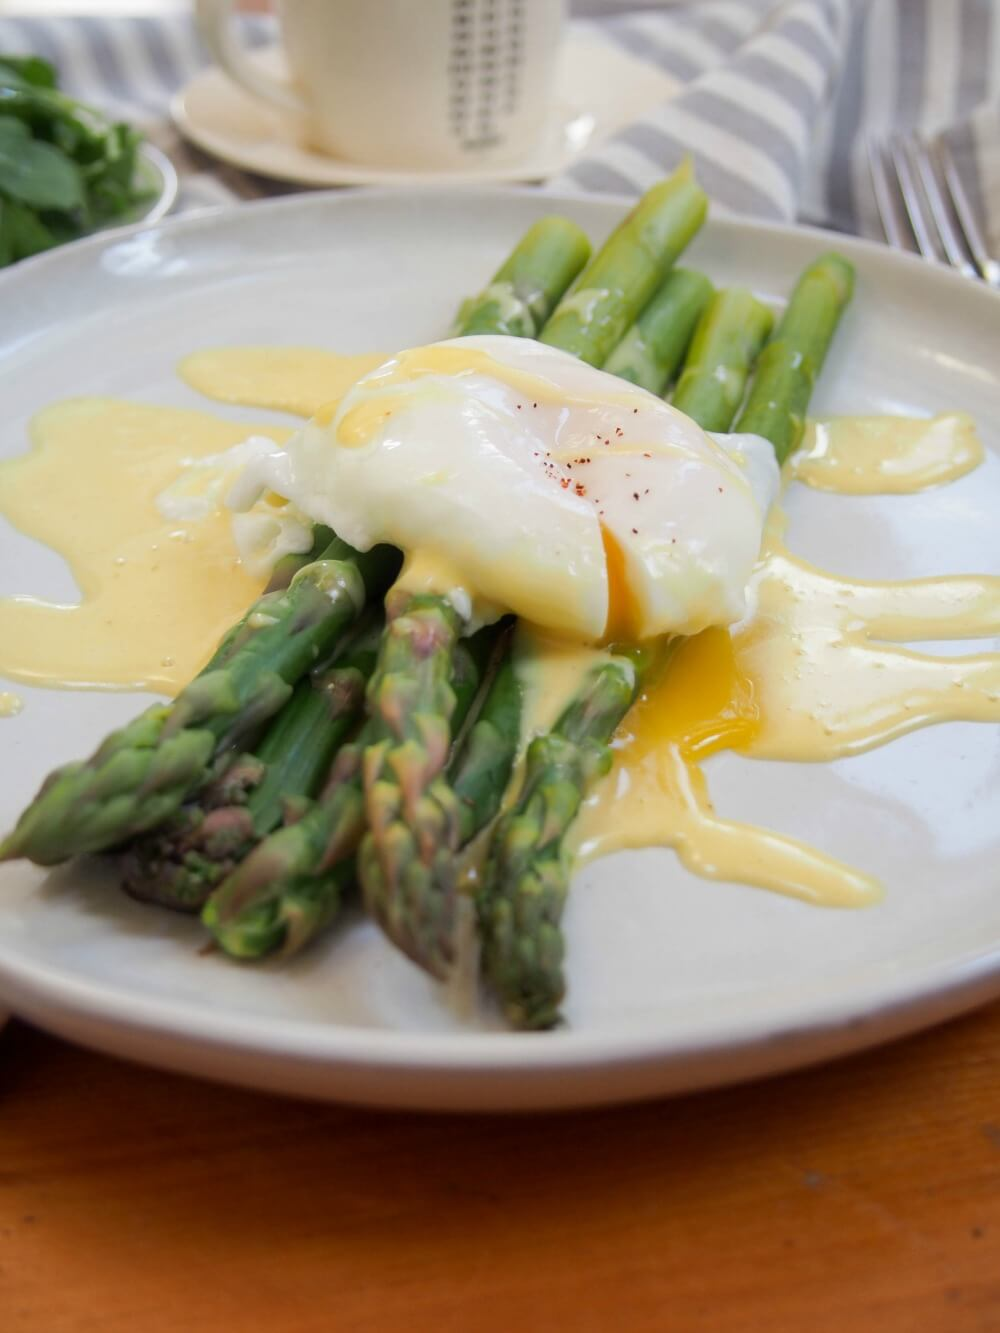 Asparagus with easy blender hollandaise sauce and poached egg